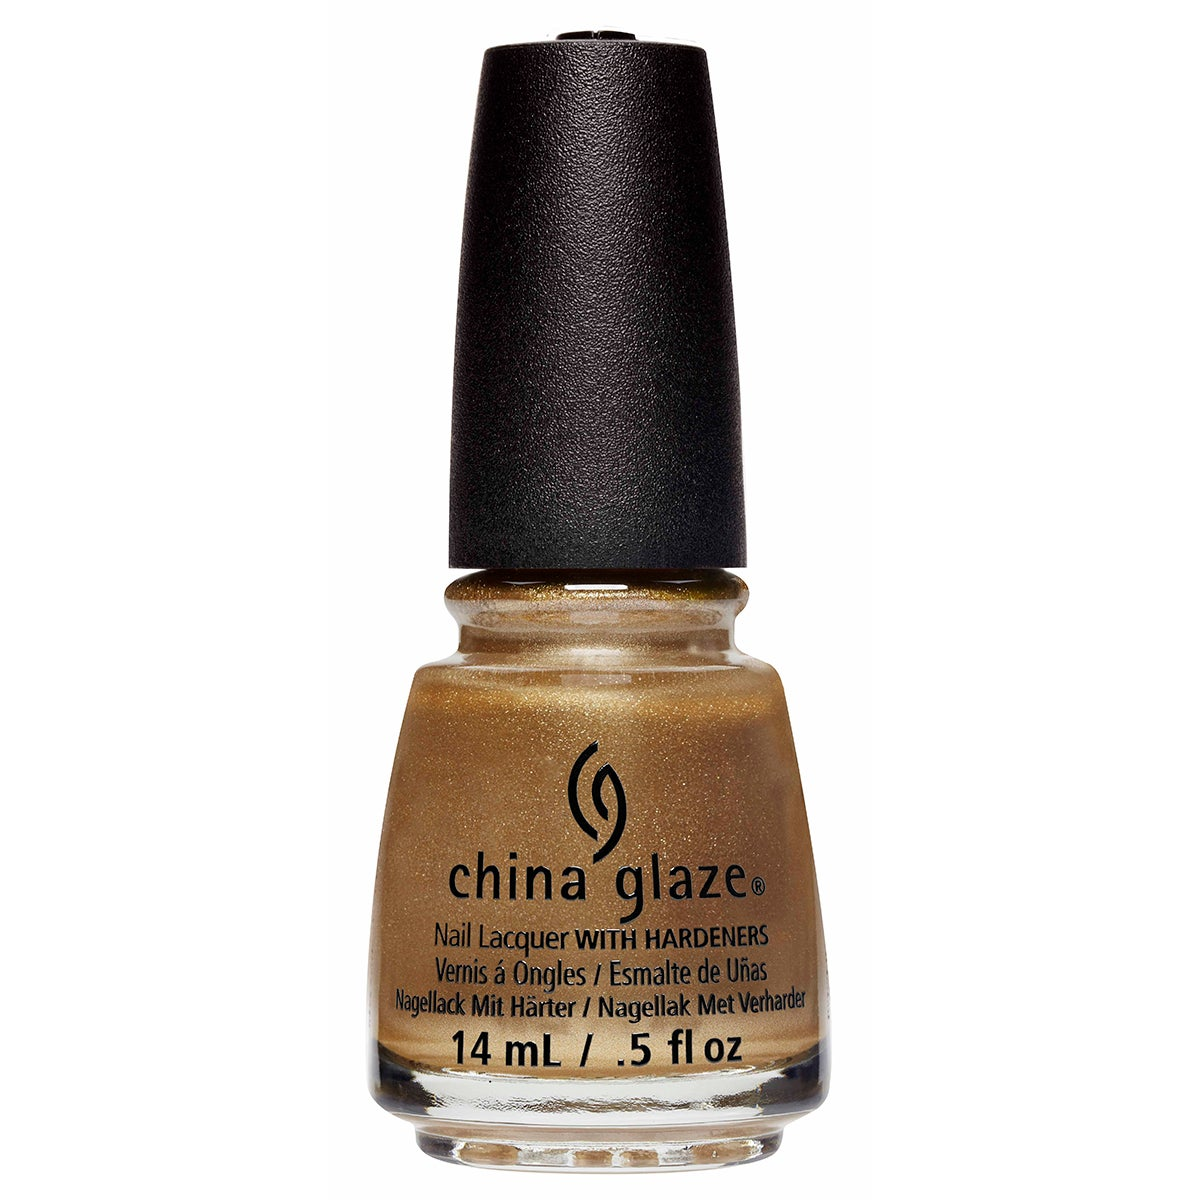 China Glaze Nail Lacquer, Truth Is Gold